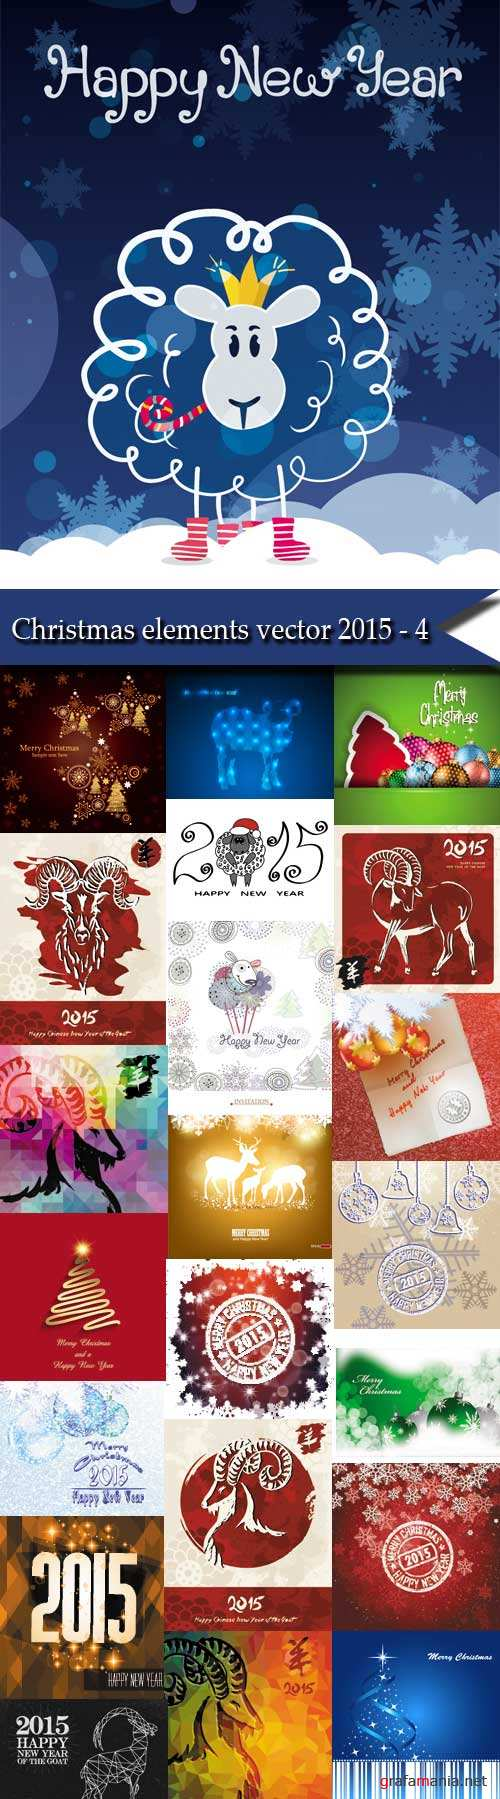 Christmas elements vector 2015 - 4